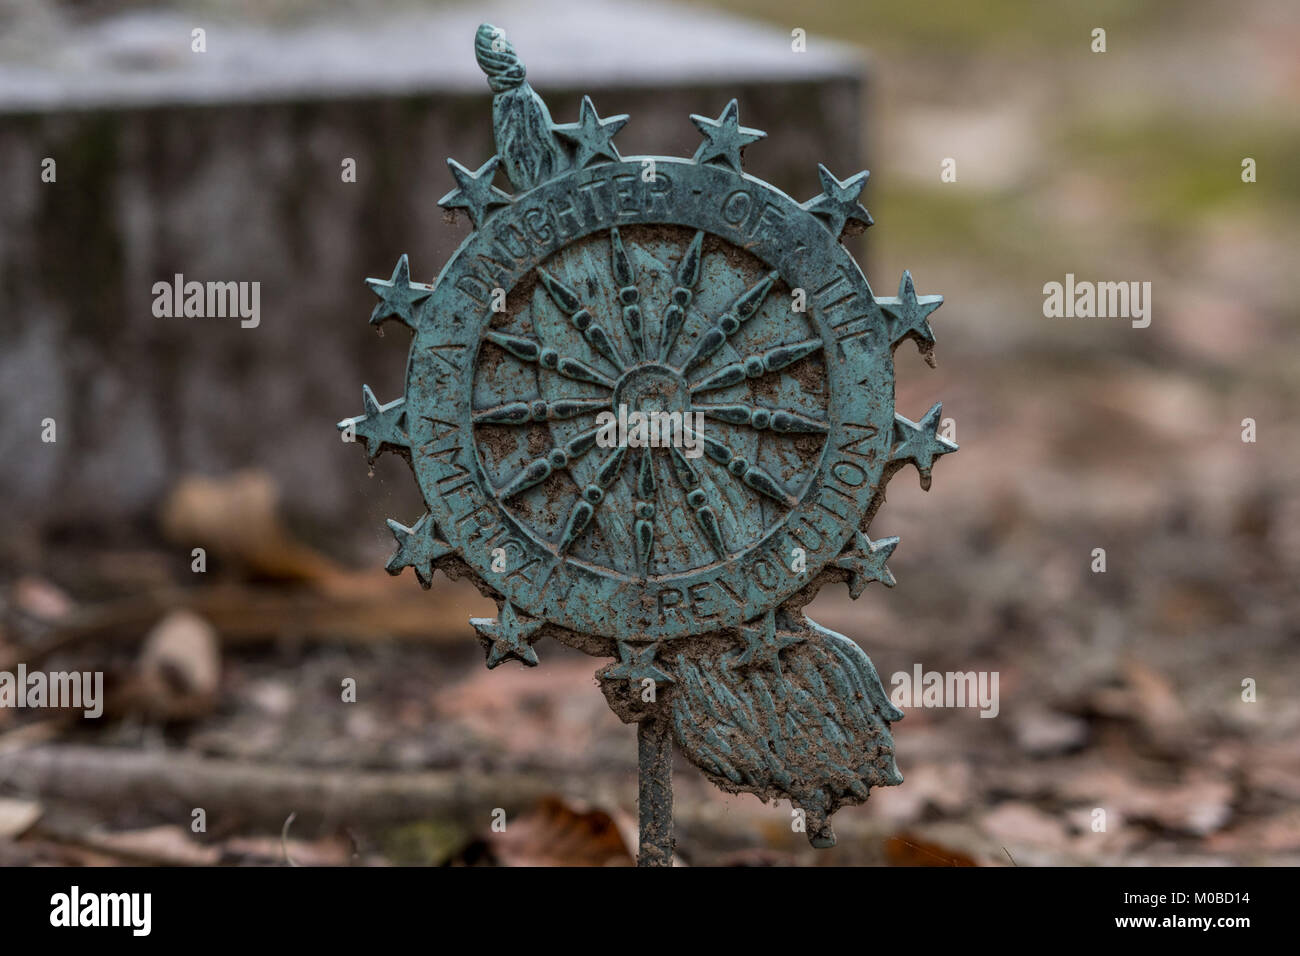 Daughter of the American Revolution Grave Marker in historic graveyard - Stock Image